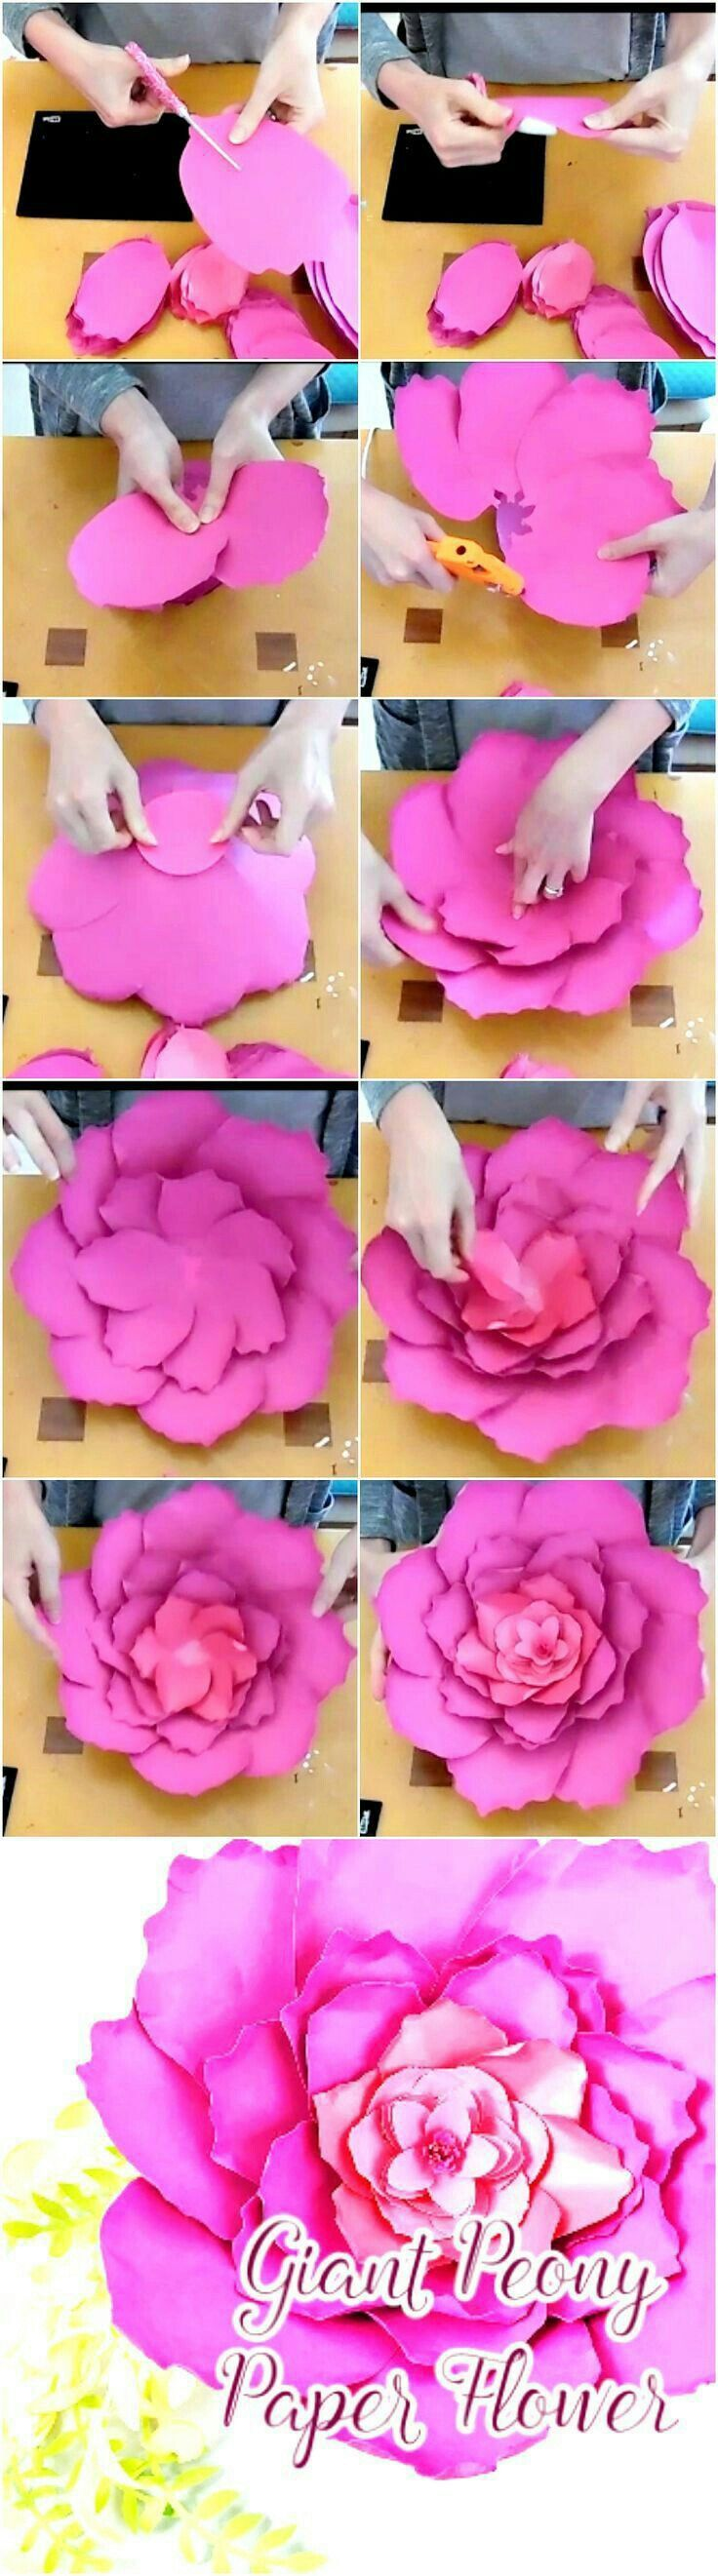 Pin By Kay Smith On Paper Flower Tutorials Pinterest Paper